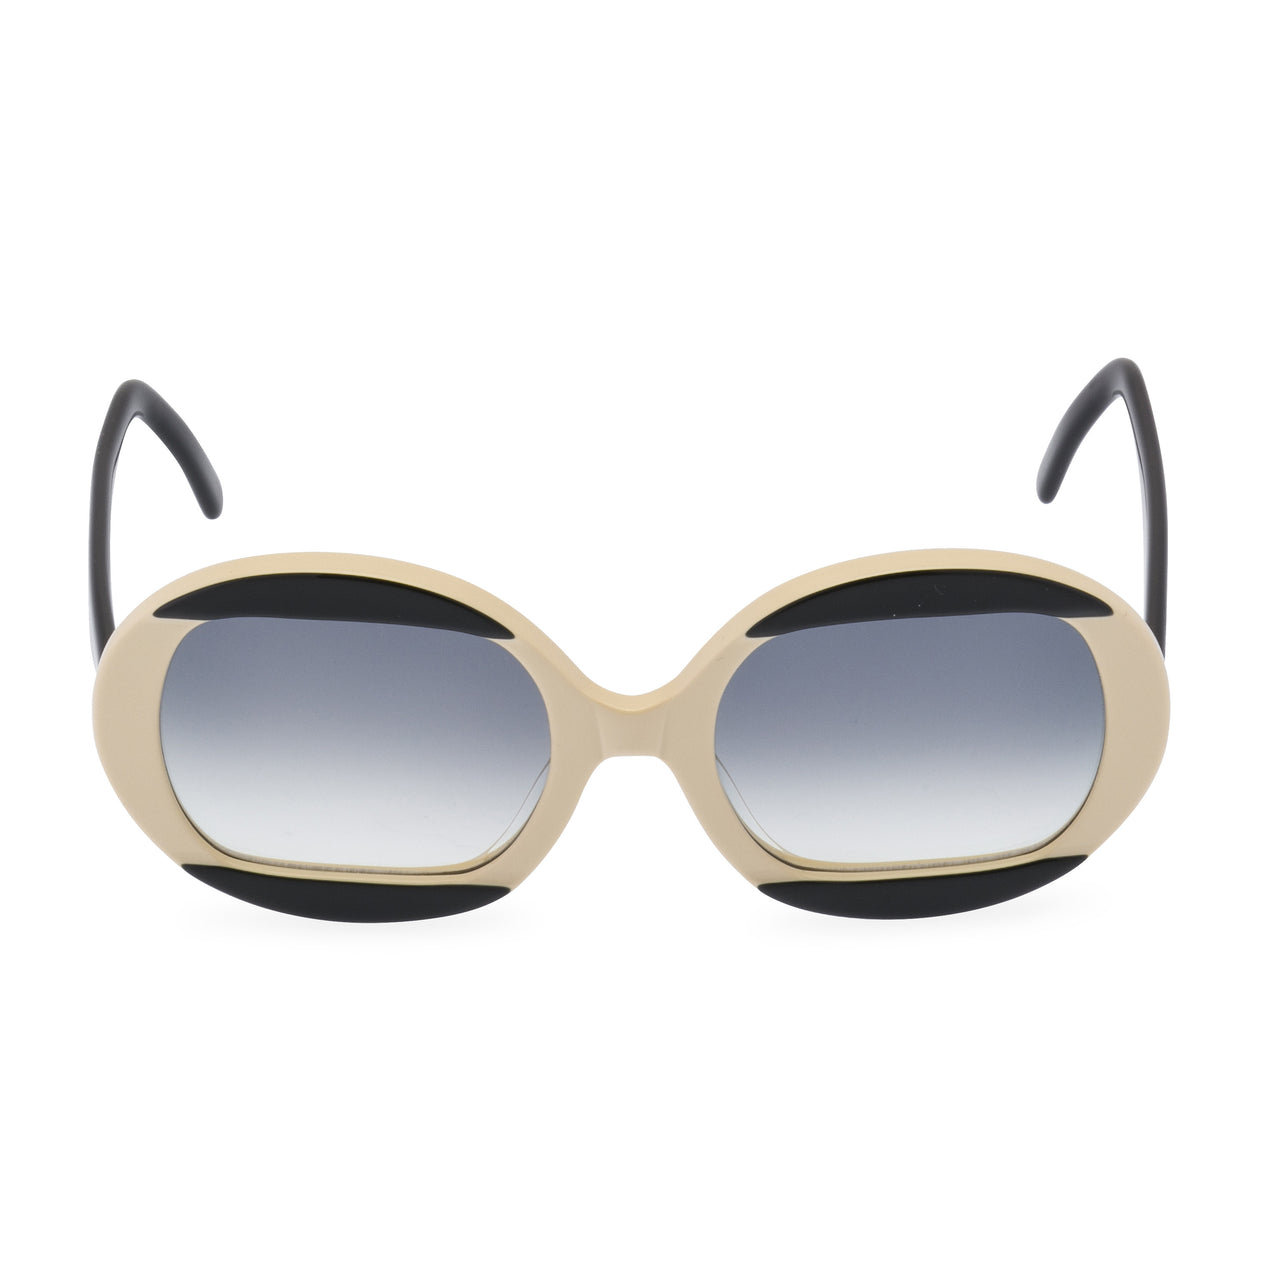 Helene - Sunglasses Taupe / Black